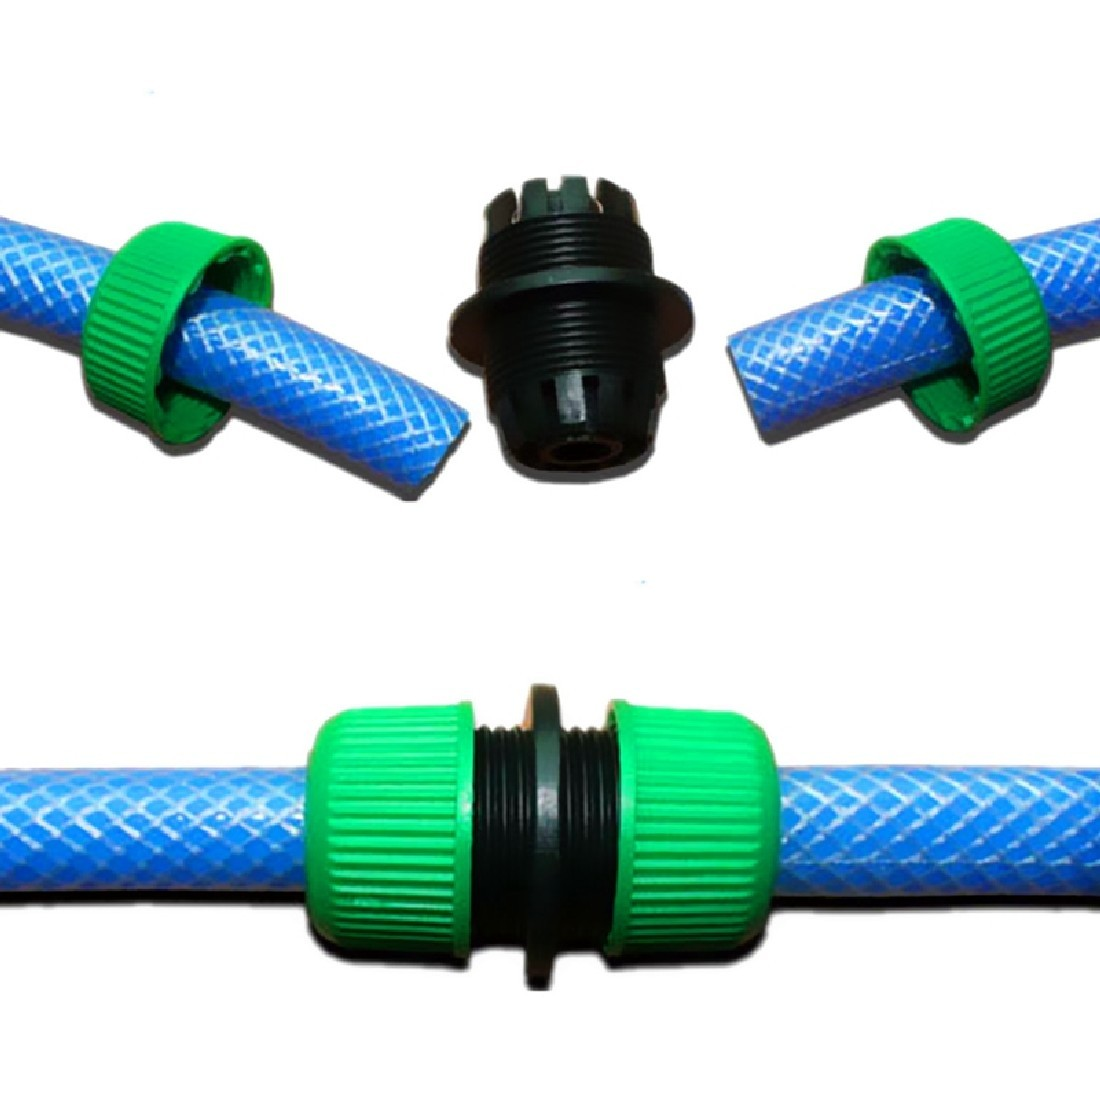 Hot!1/2'' Garden Water Hose Connector Pipe Quick Connectors Joining Mender Repair Leaking Joiner Connector Adapter